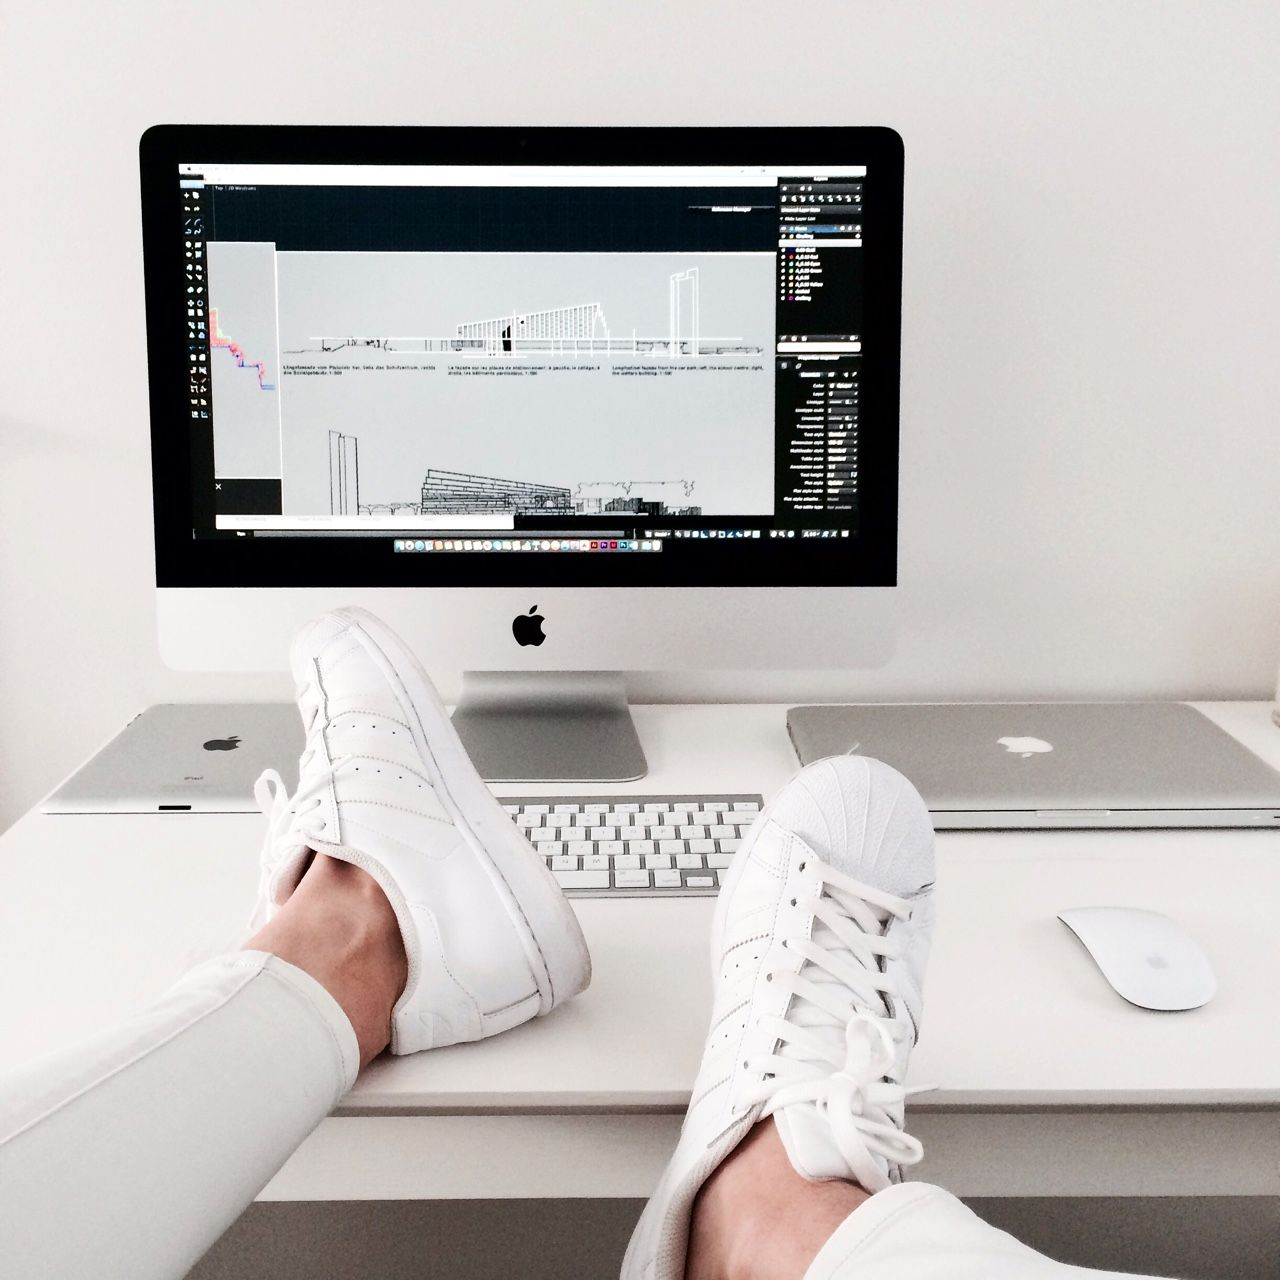 Be... - v-sp:   Apple + architecture + Adidas ⬜️...